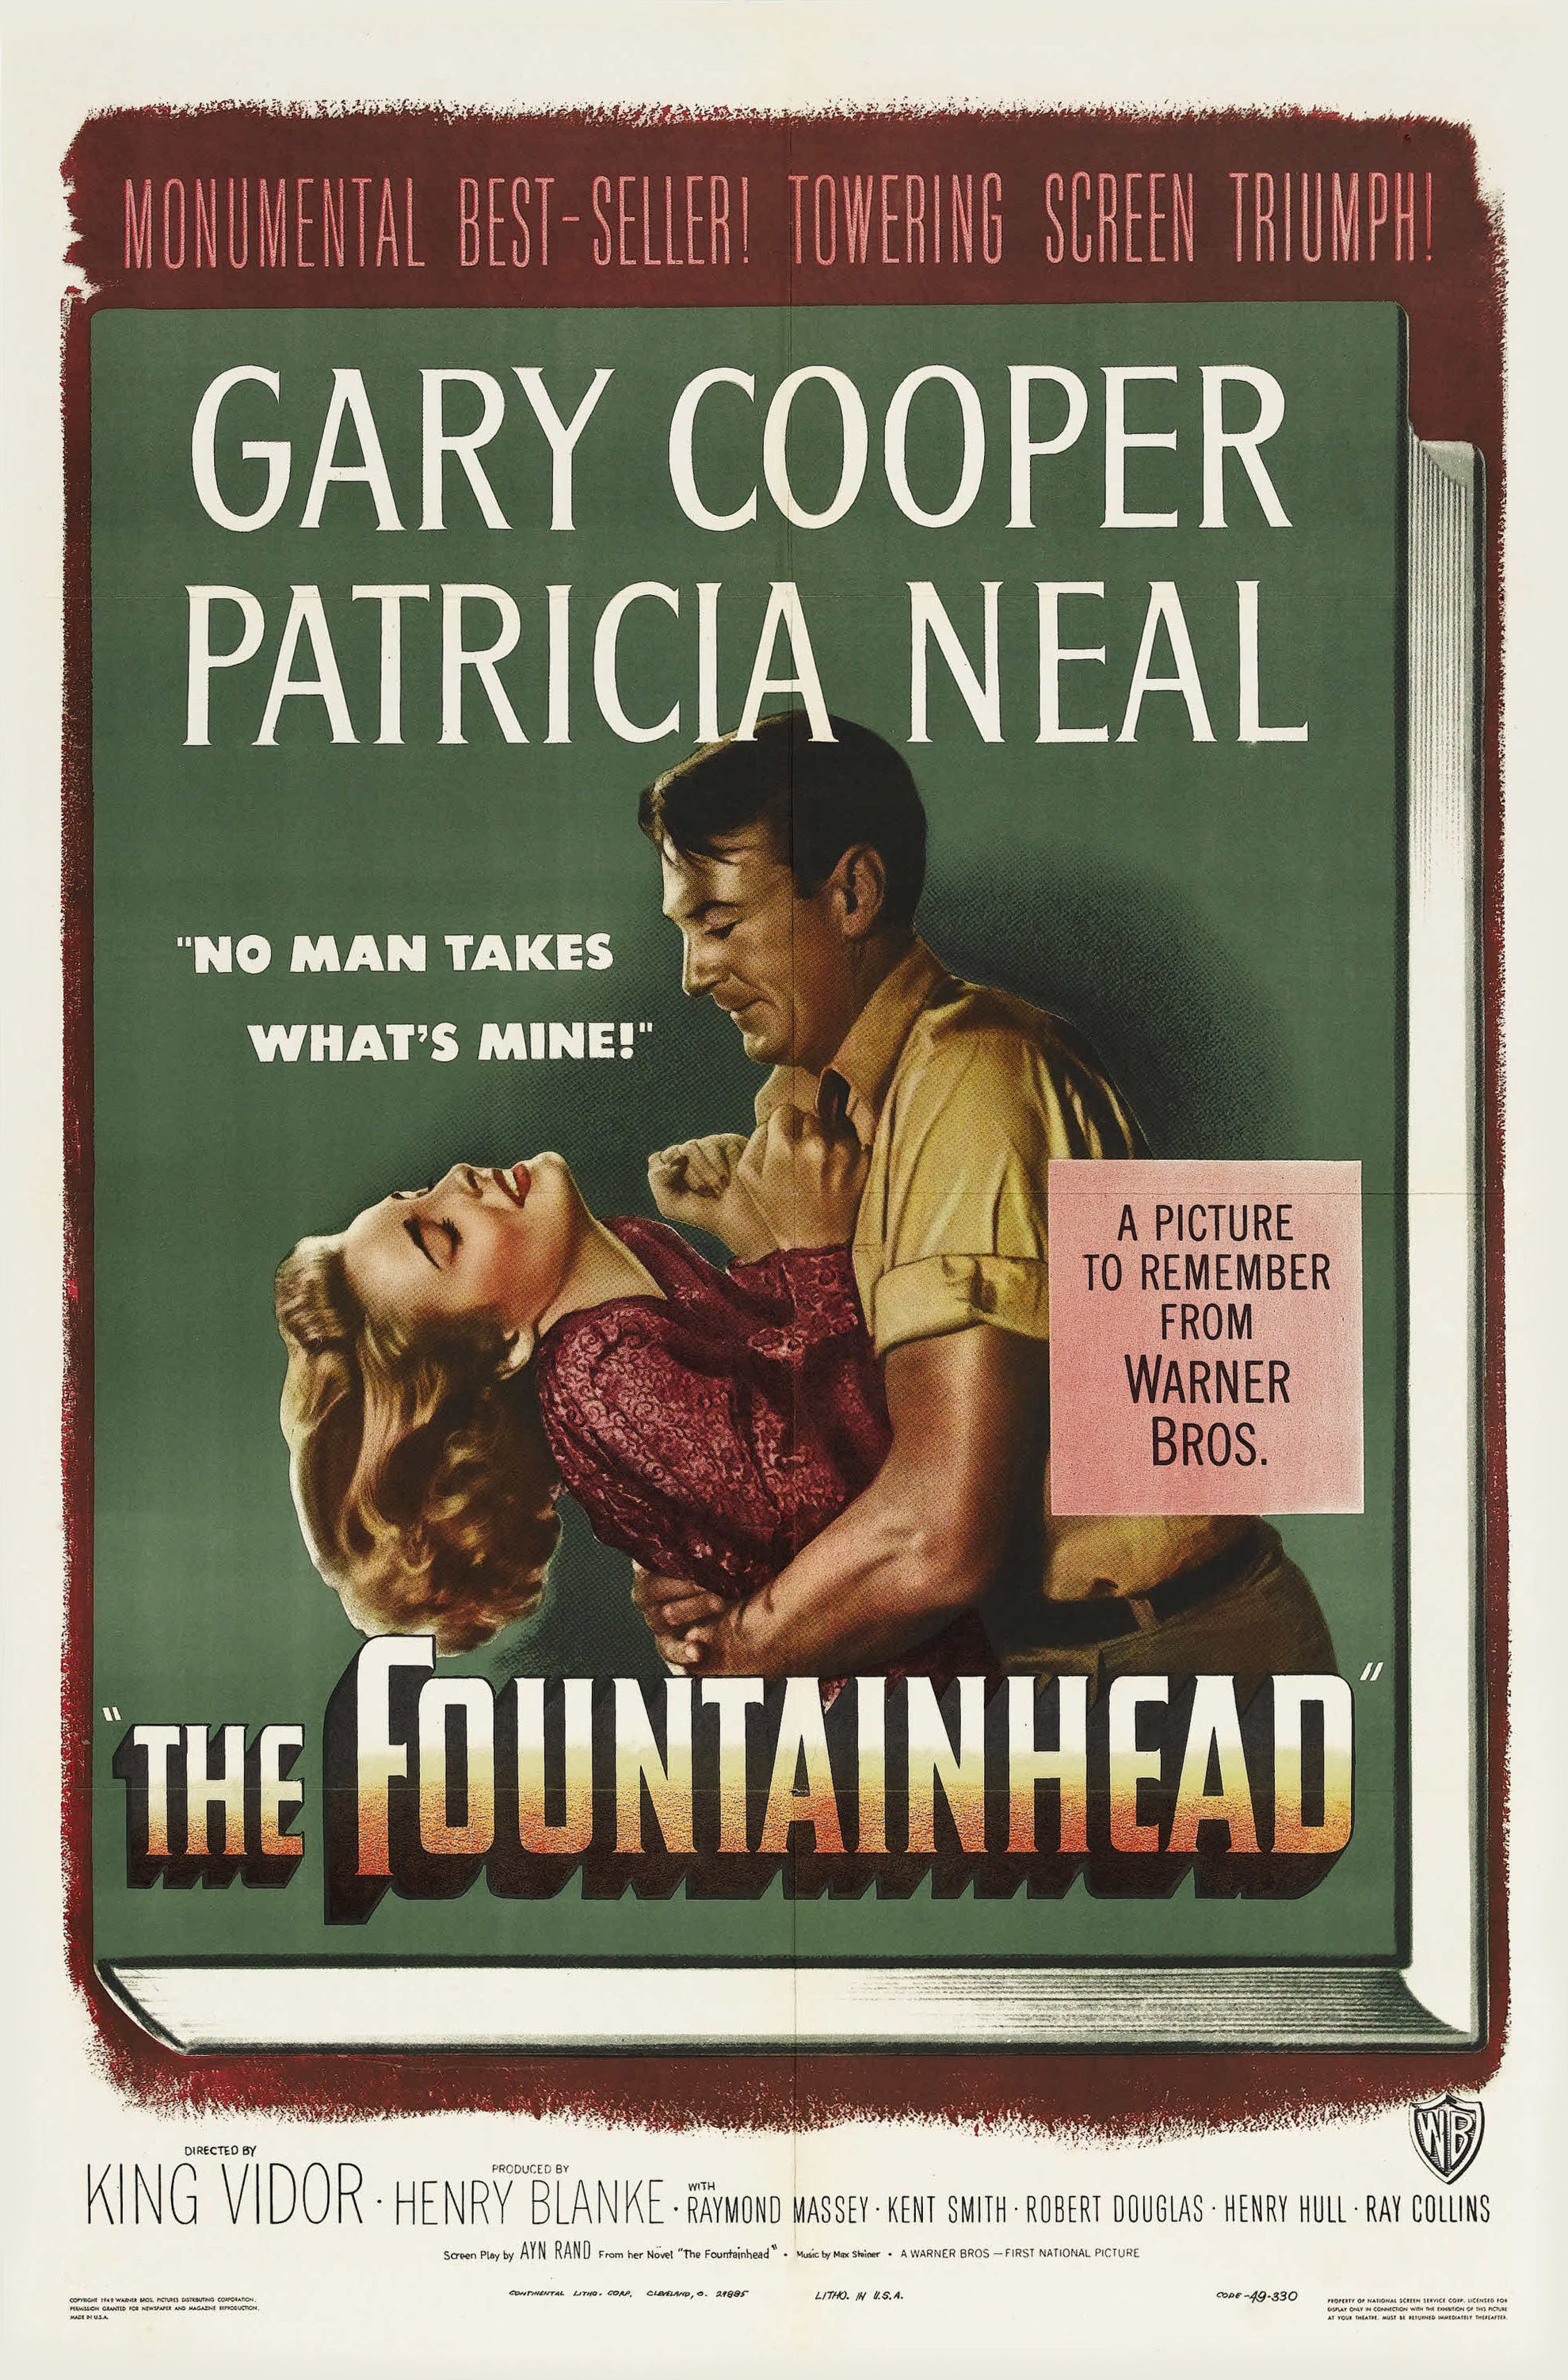 - An uncompromising, visionary architect struggles to maintain his integrity and individualism despite personal, professional and economic pressures to conform to popular standards.19491 h 54 min